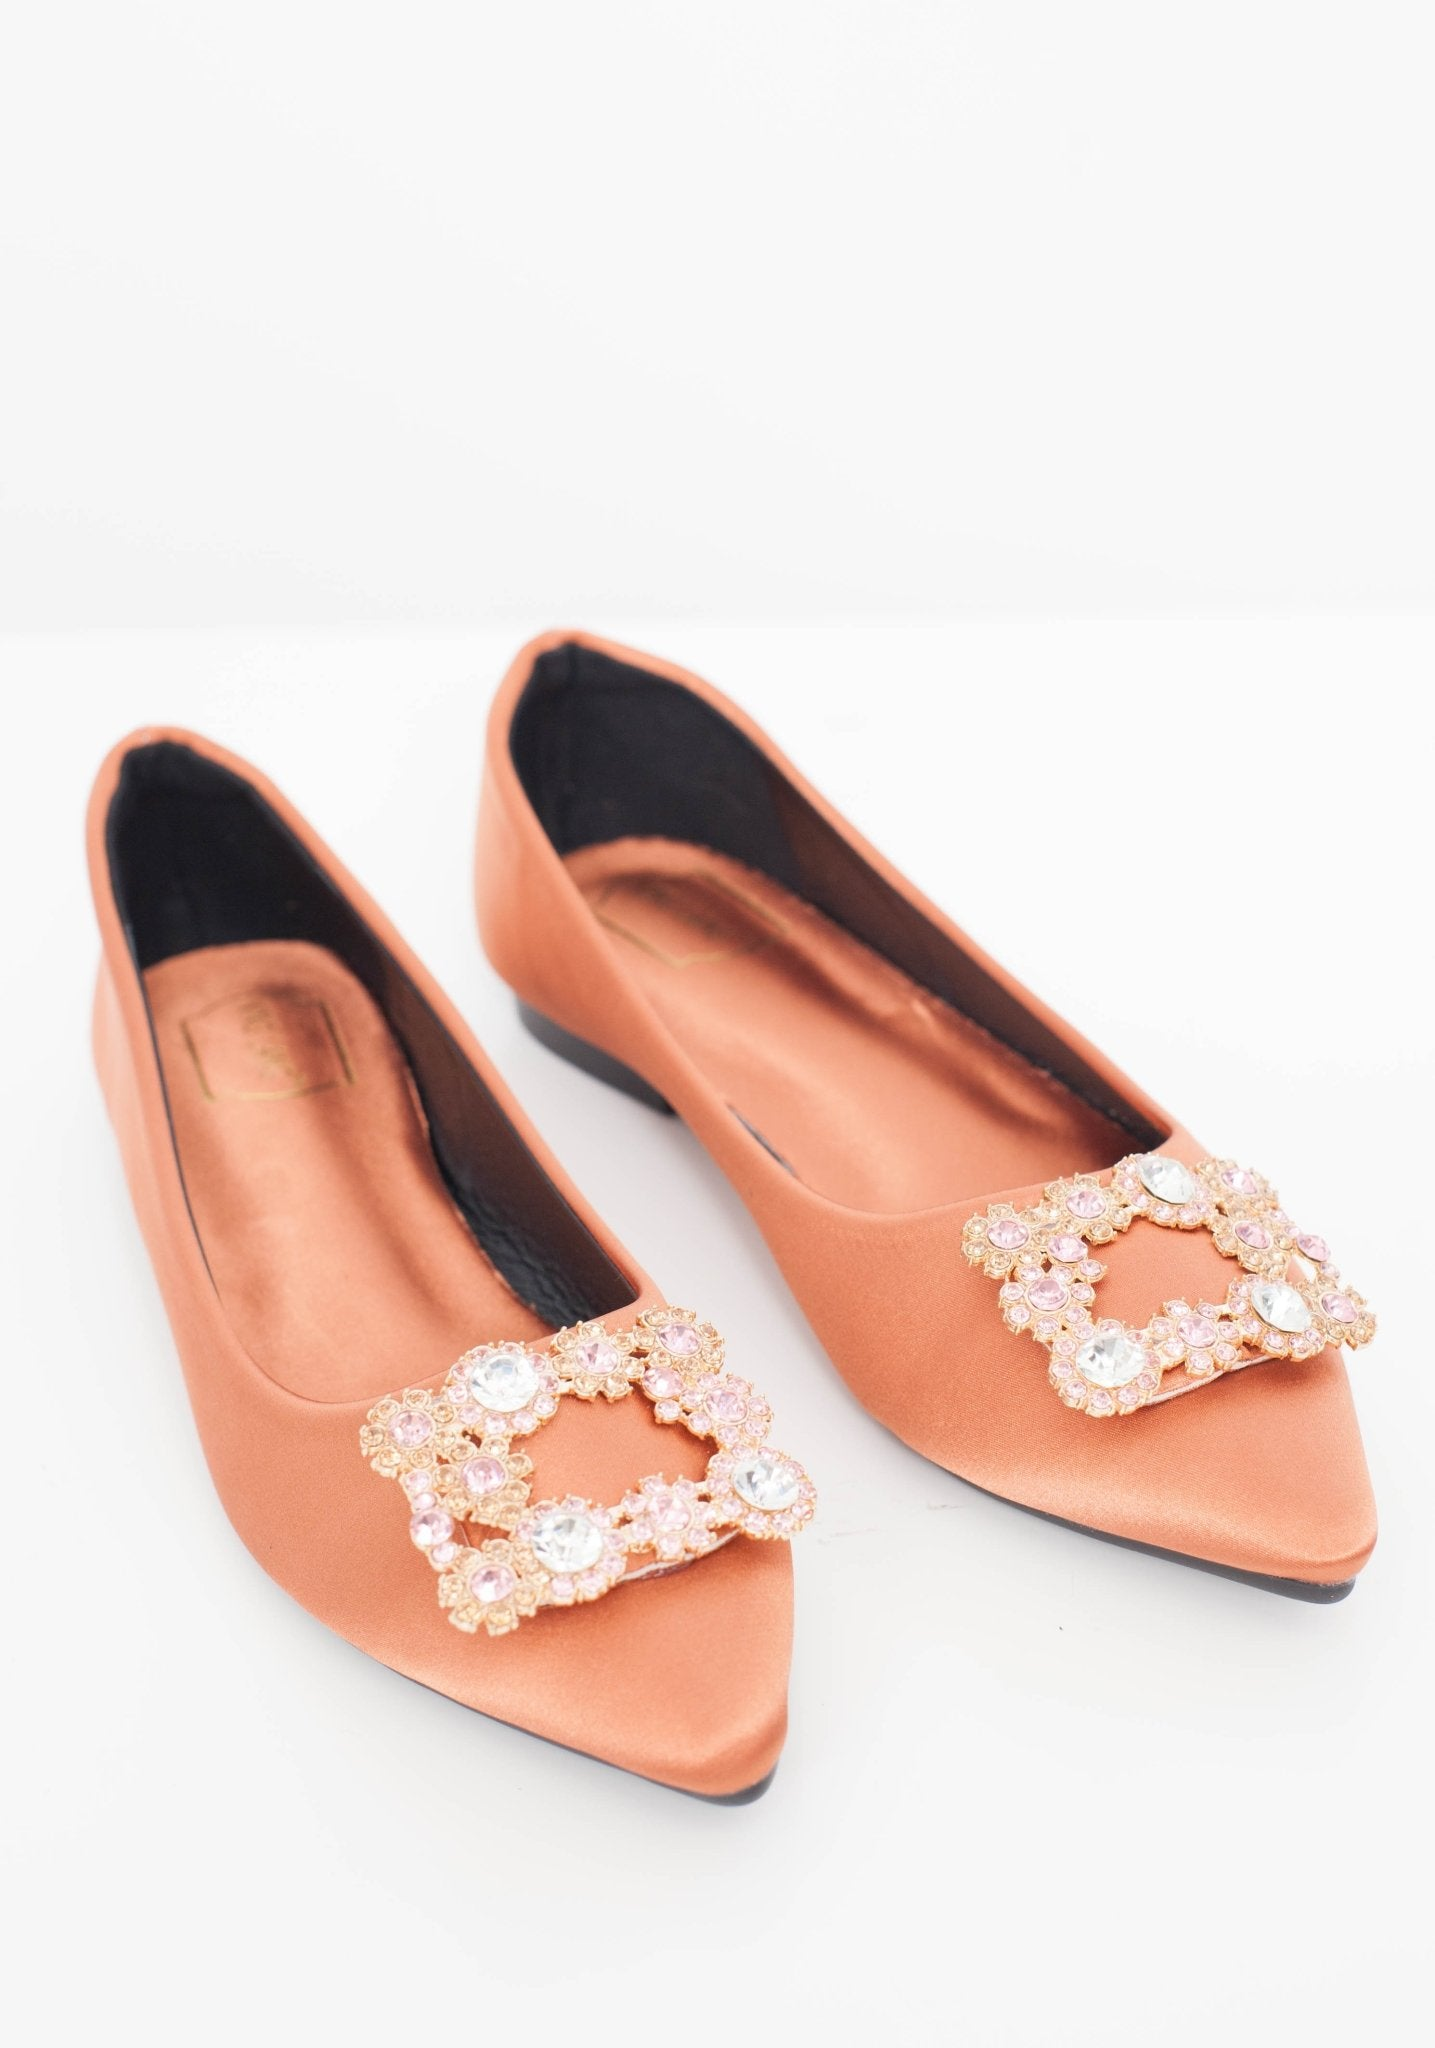 Blair Embellished Flats In Copper - The Walk in Wardrobe